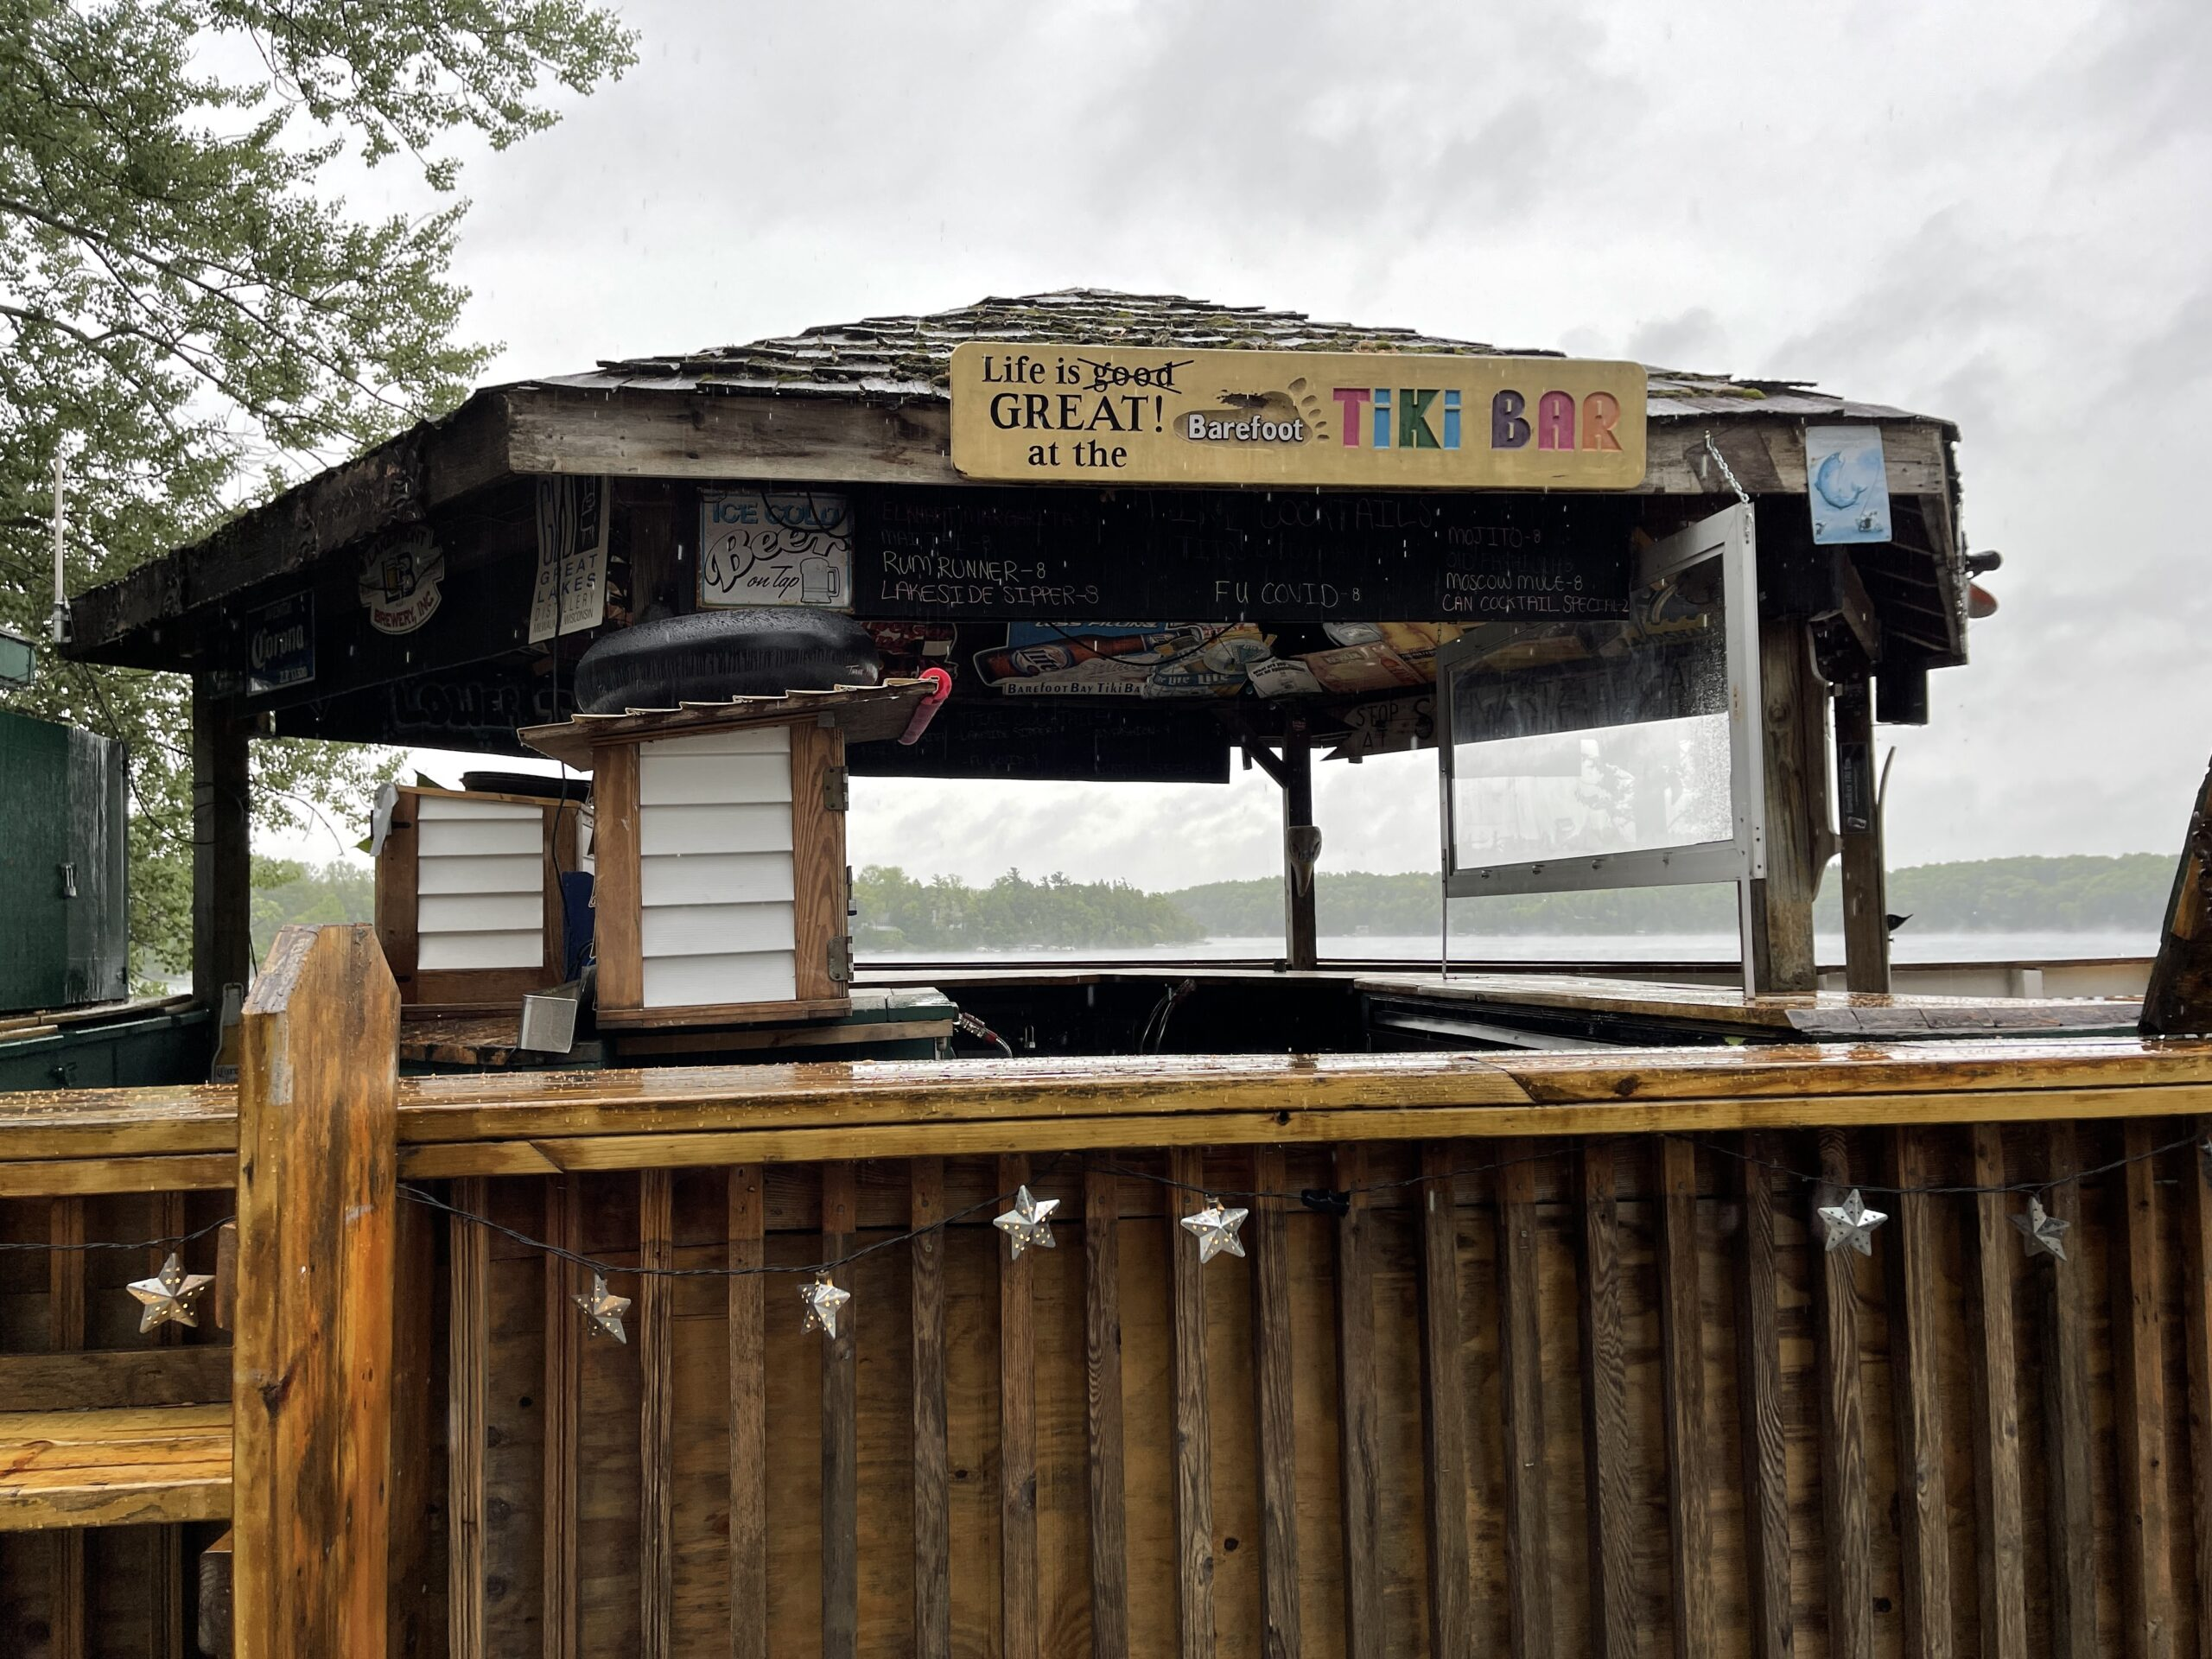 The Shore Club's Tiki Bar is one of the most popular elkhart lake restaurants.